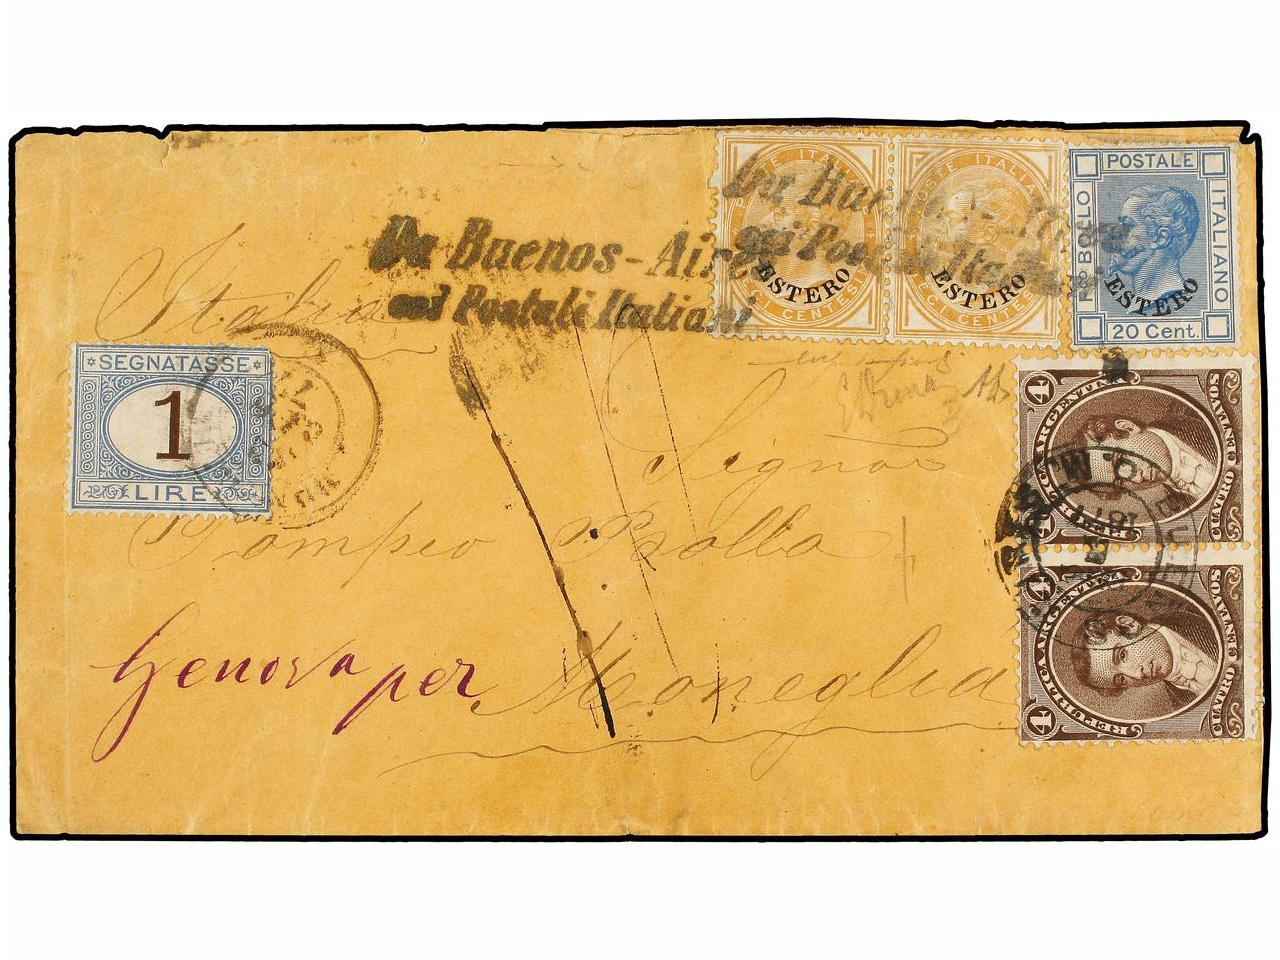 ✉ ARGENTINA. 1877. BUENOS AIRES to MONEGLIA. Circulated with